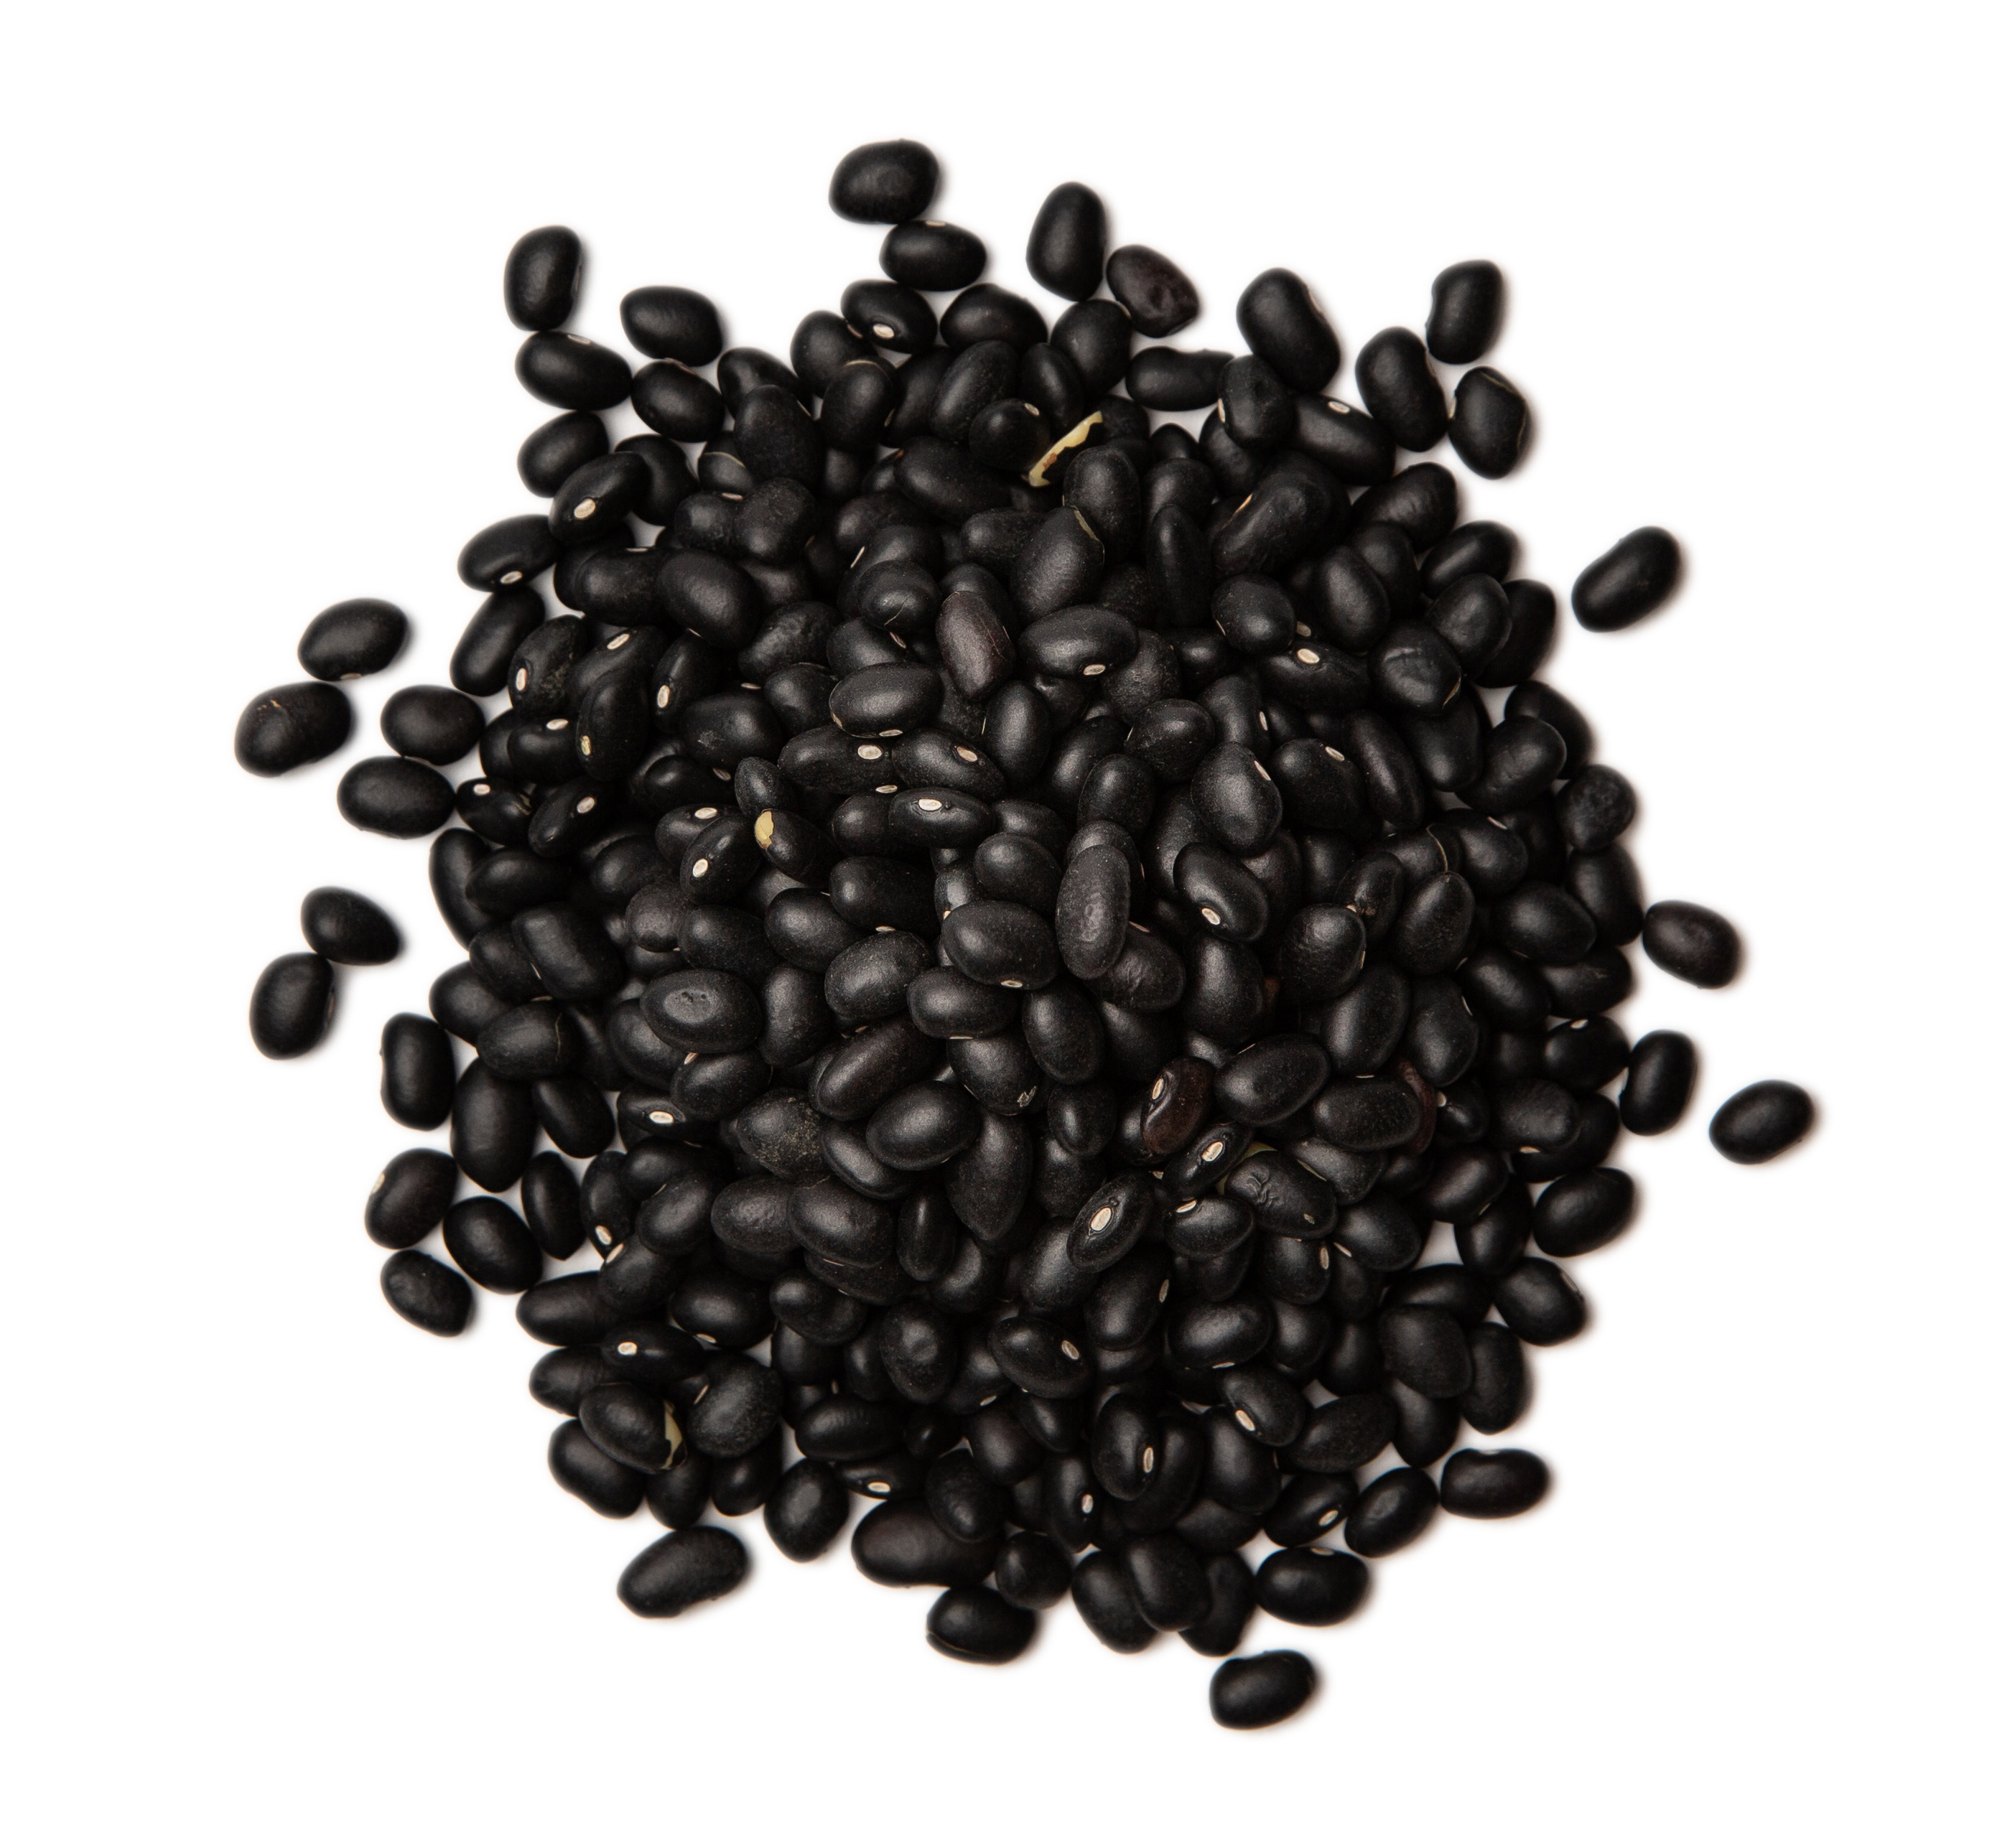 Detail of Black Beans